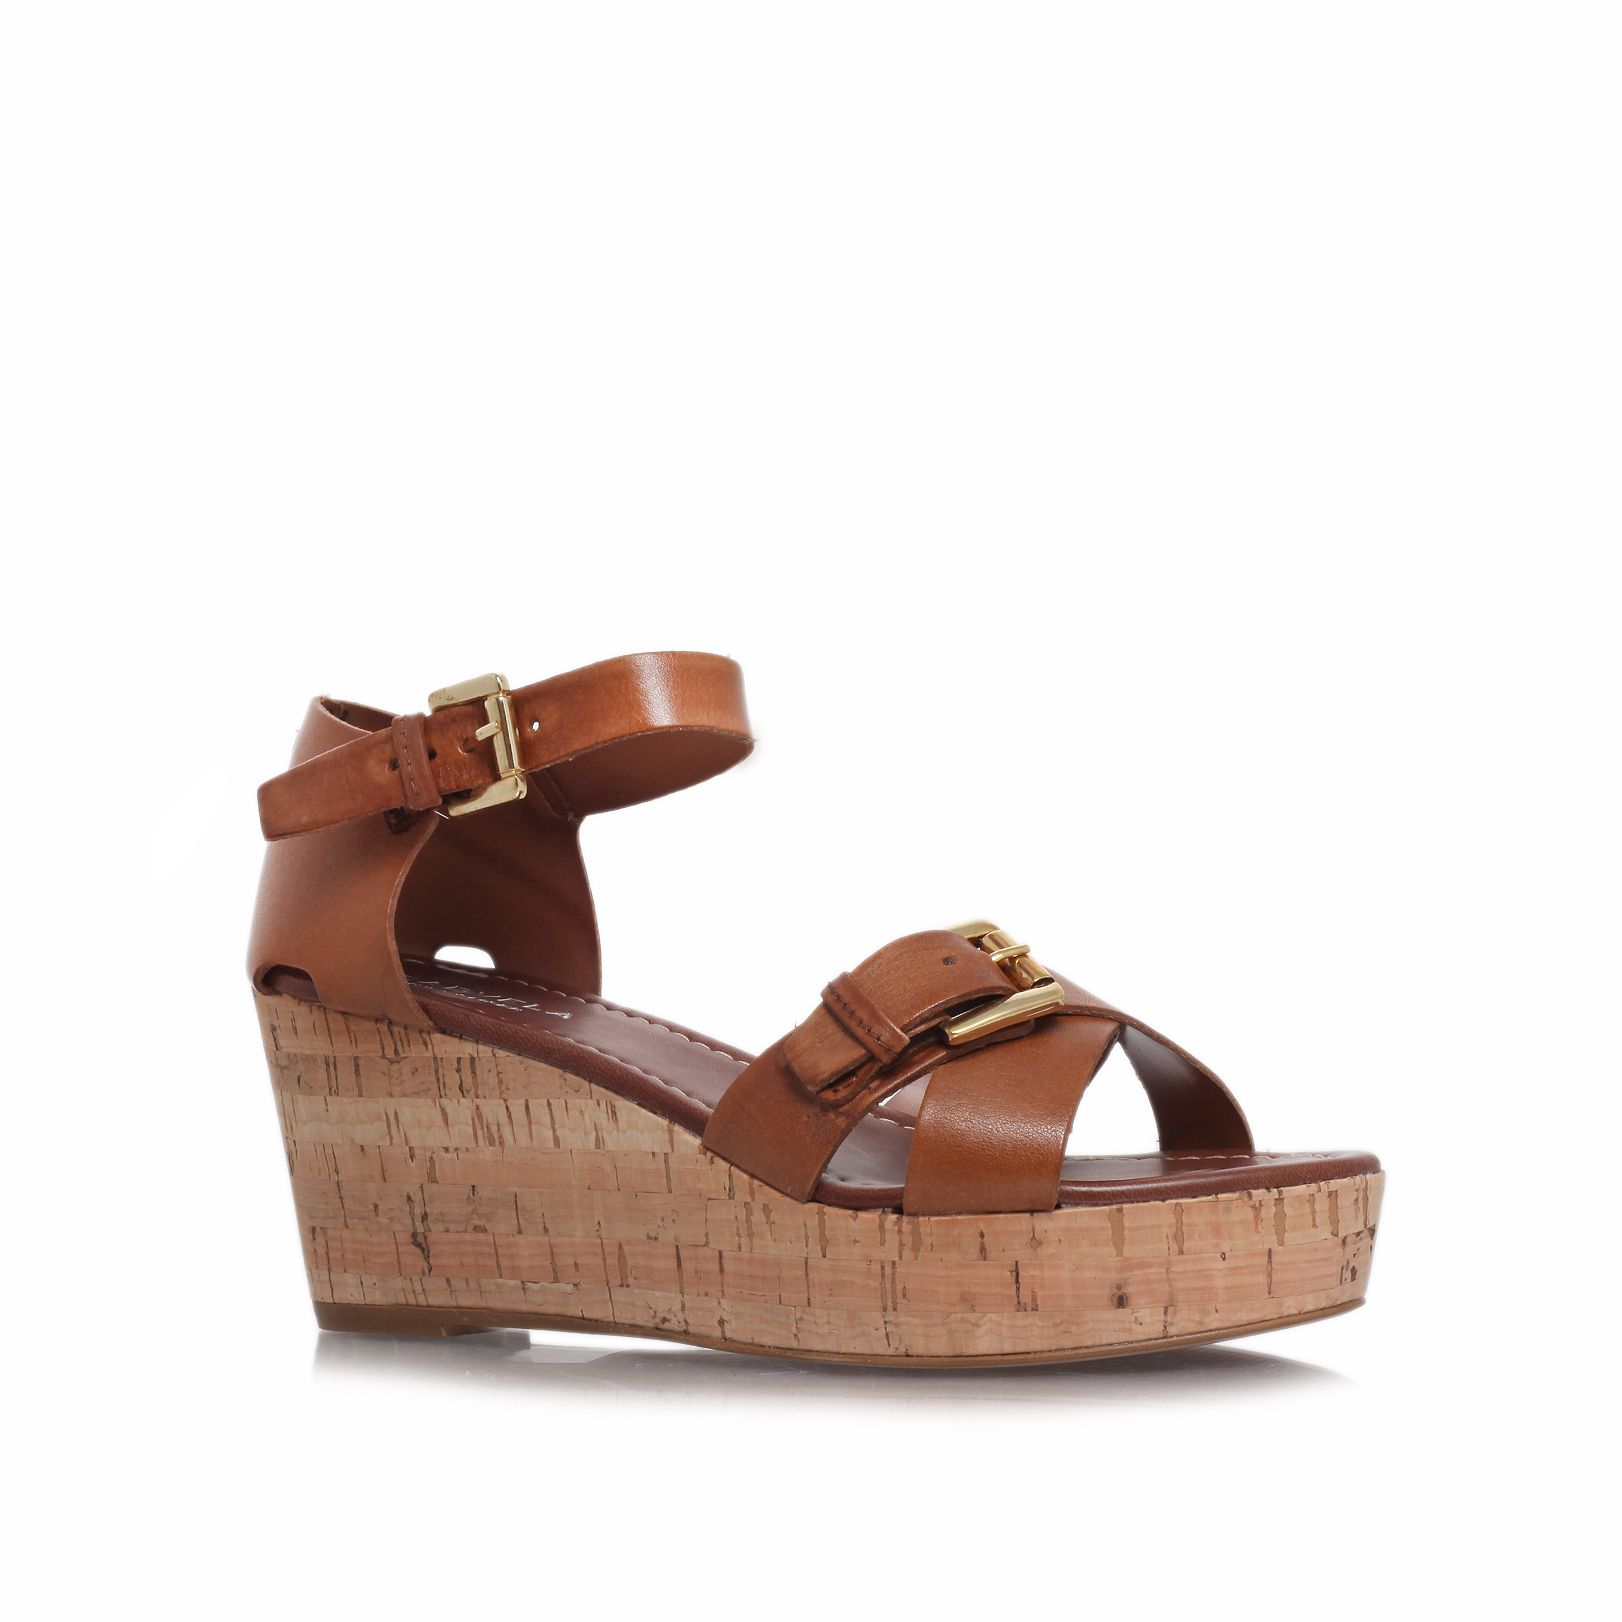 Knock mid heel wedge sandals